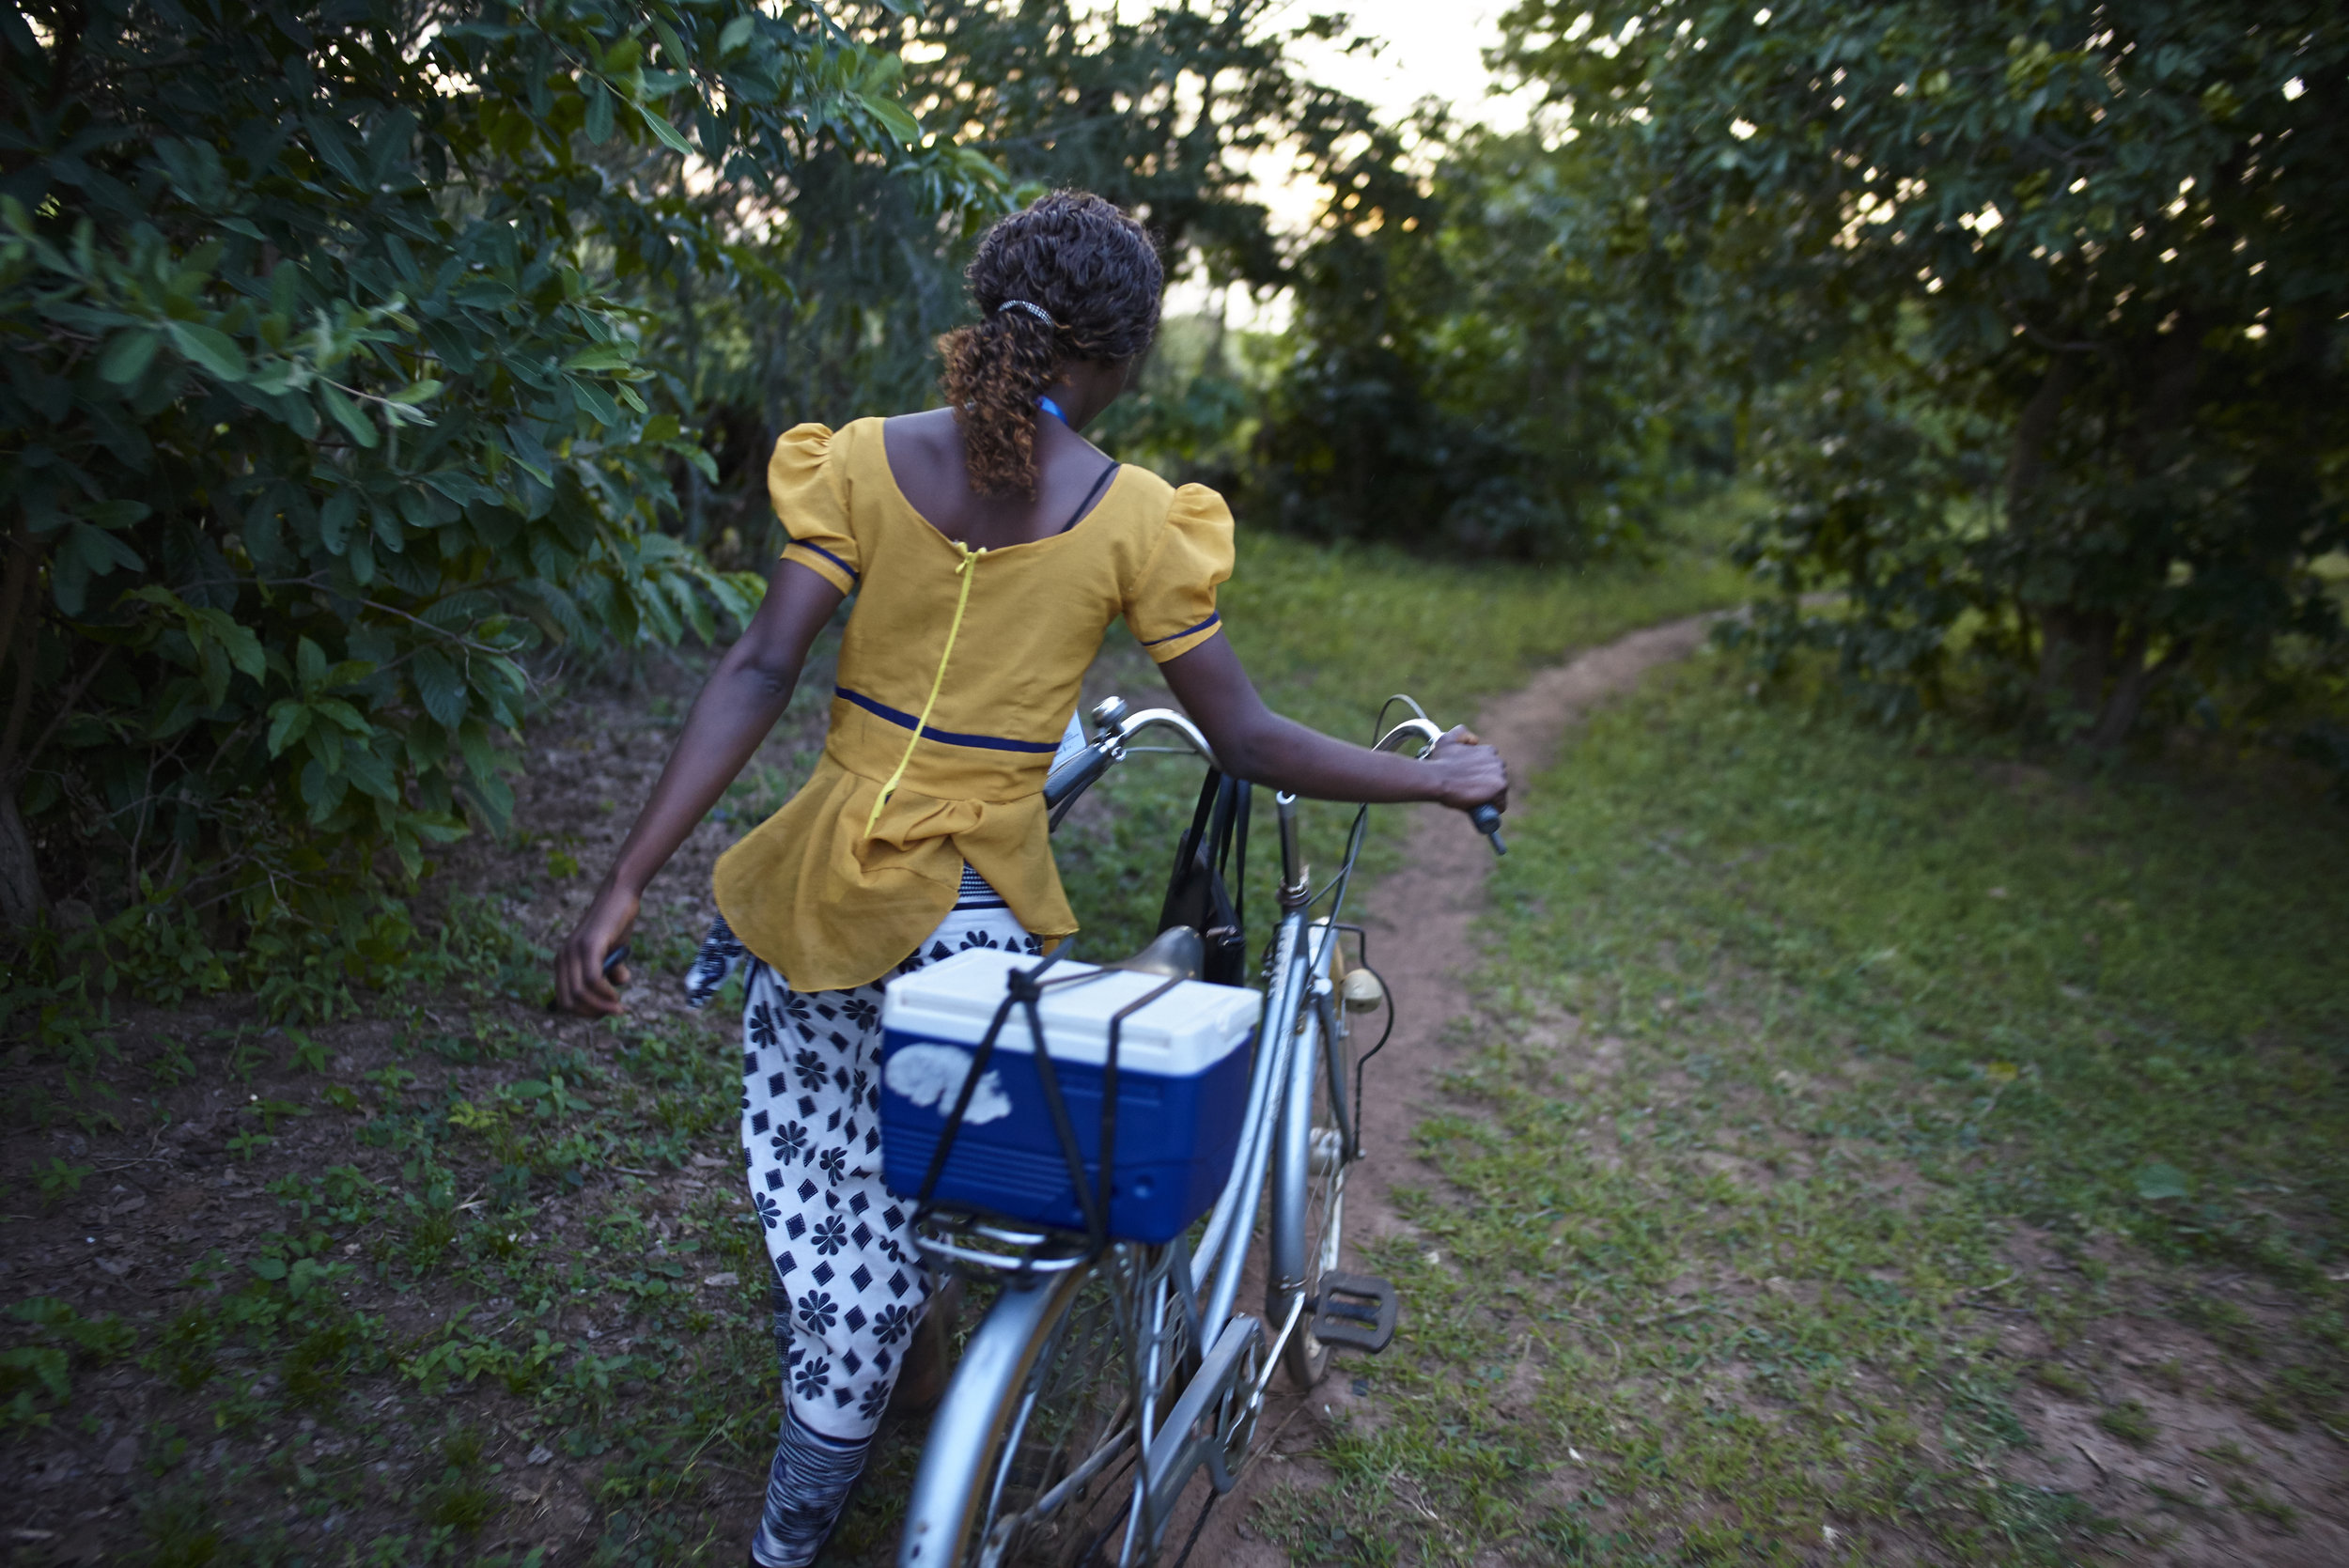 Community Health worker carrying a sputum collection container during screening and linkage activities within the community